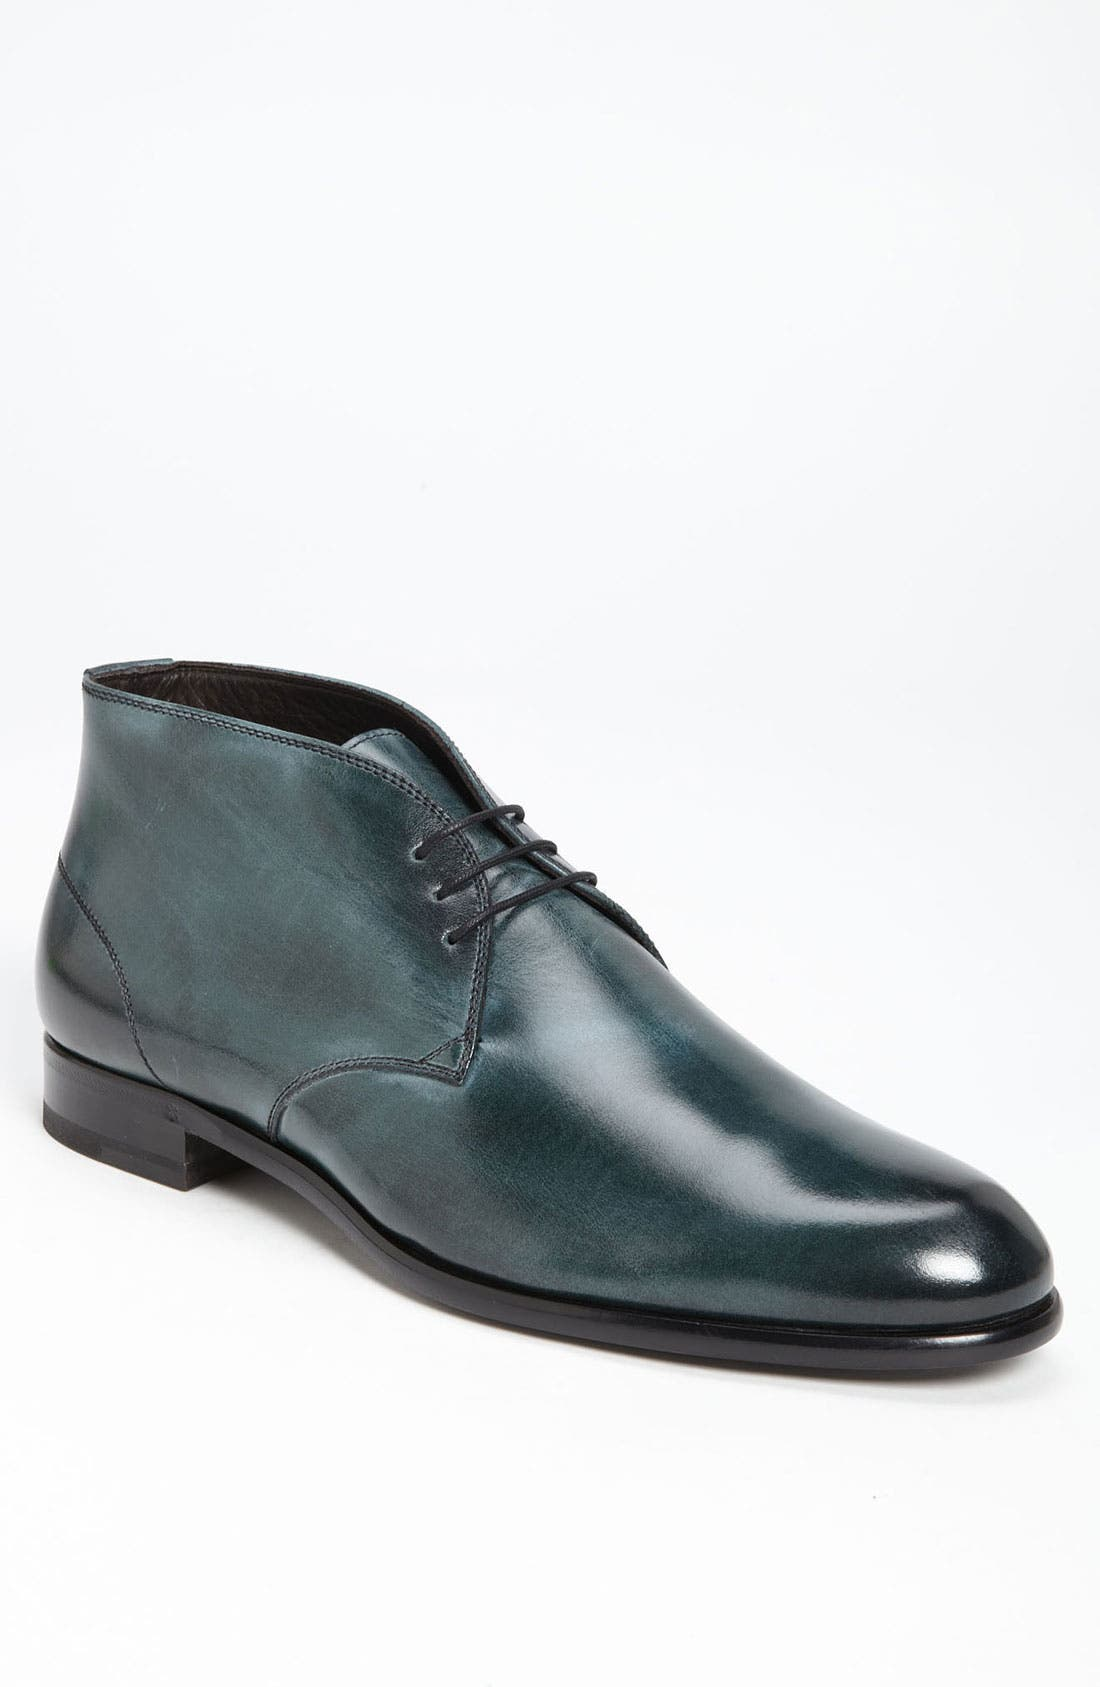 Alternate Image 1 Selected - Bruno Magli 'Melano' Chukka Boot